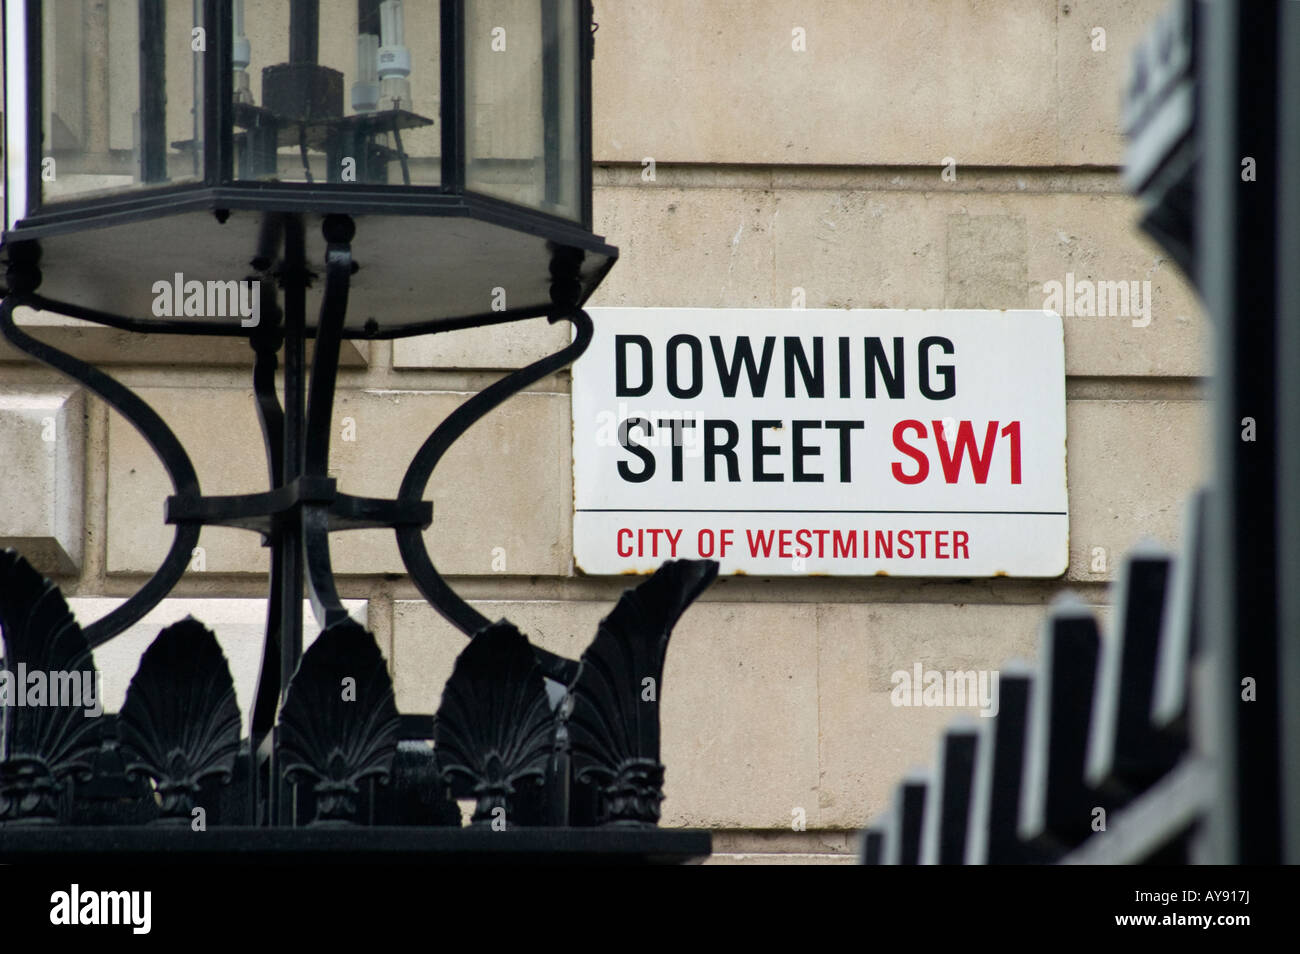 Downing Street Sign, Westminster, London - Stock Image